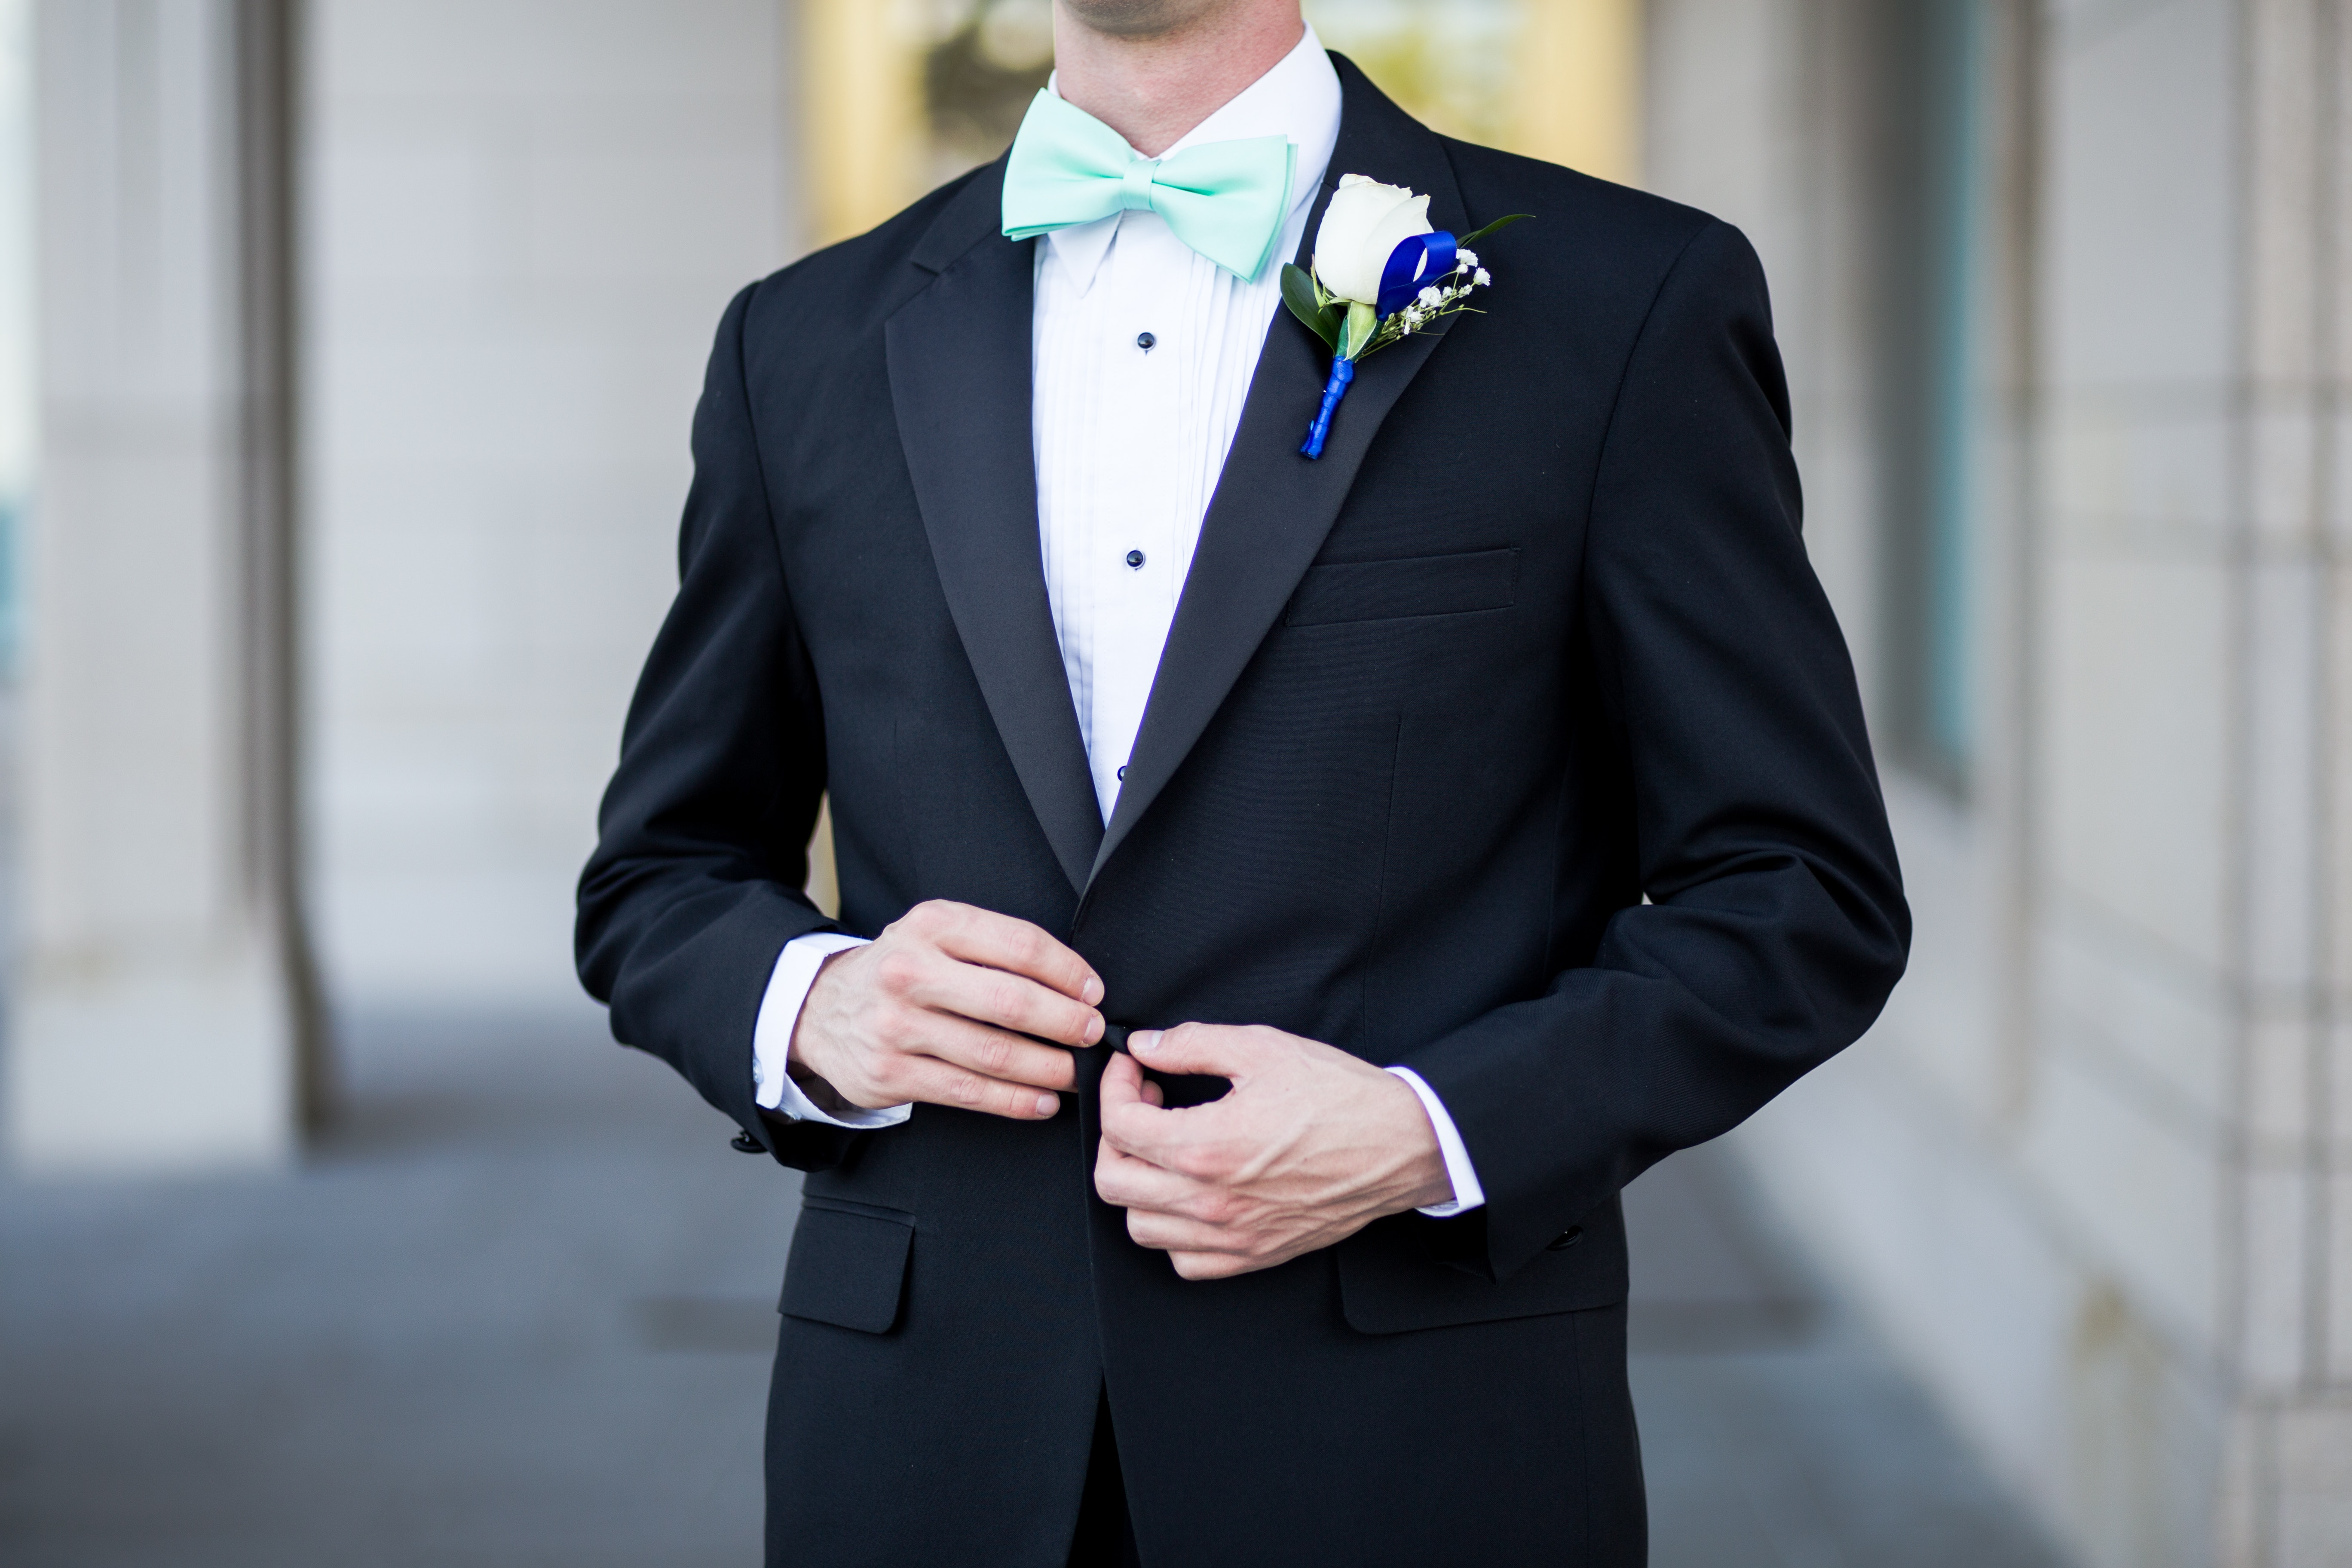 Man wearing black and teal tuxedo photo